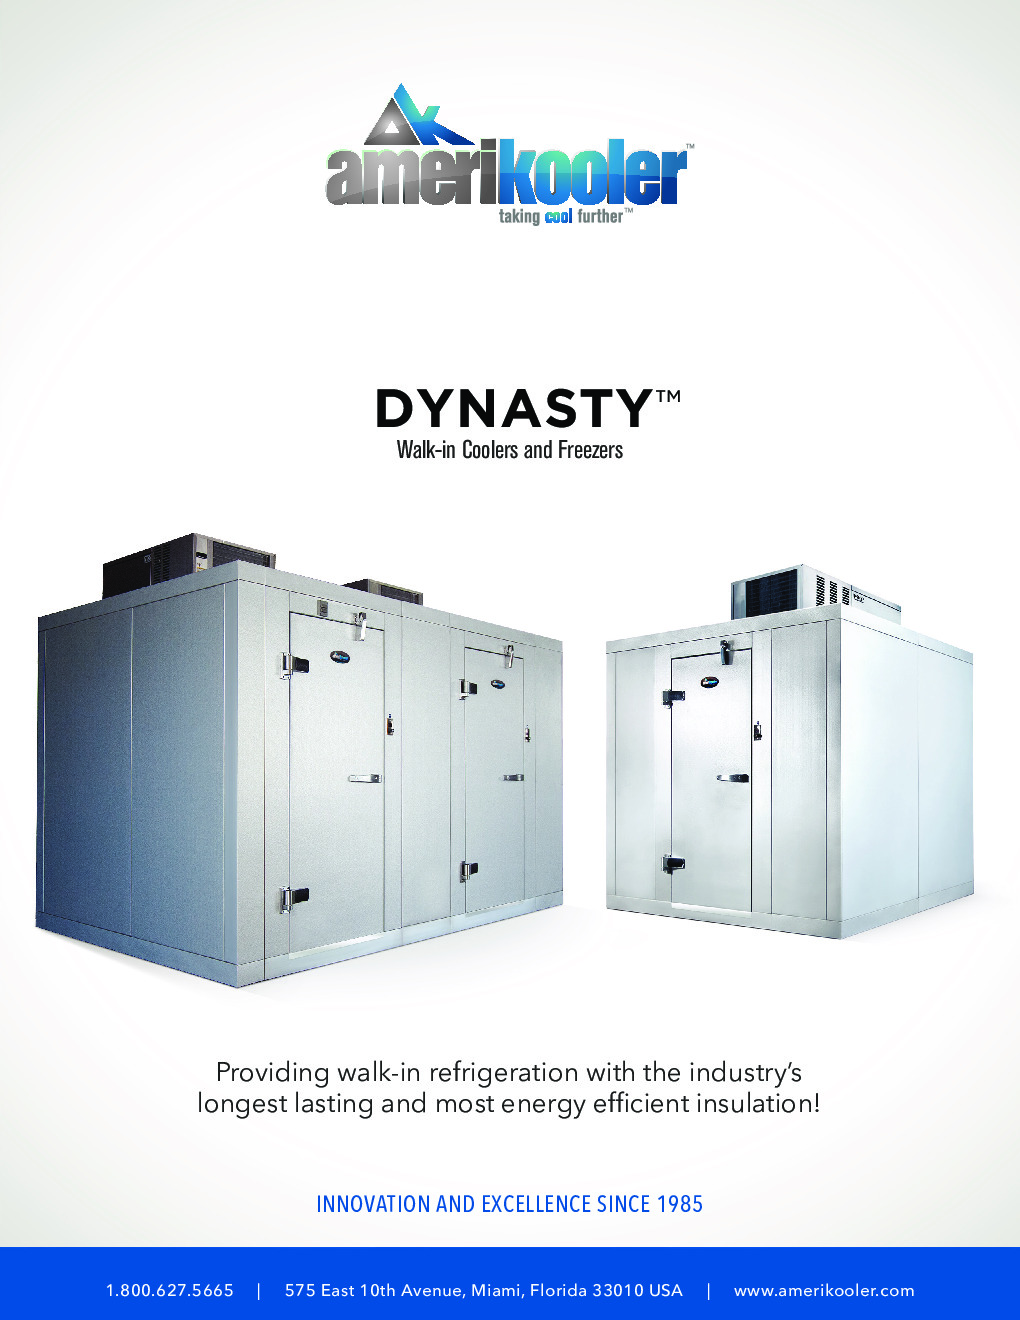 AmeriKooler DW081677N-5/11-RM 8' X 16' Walk-In Cooler, 11' L Cooler without Floor and 5' L Freezer, Remote